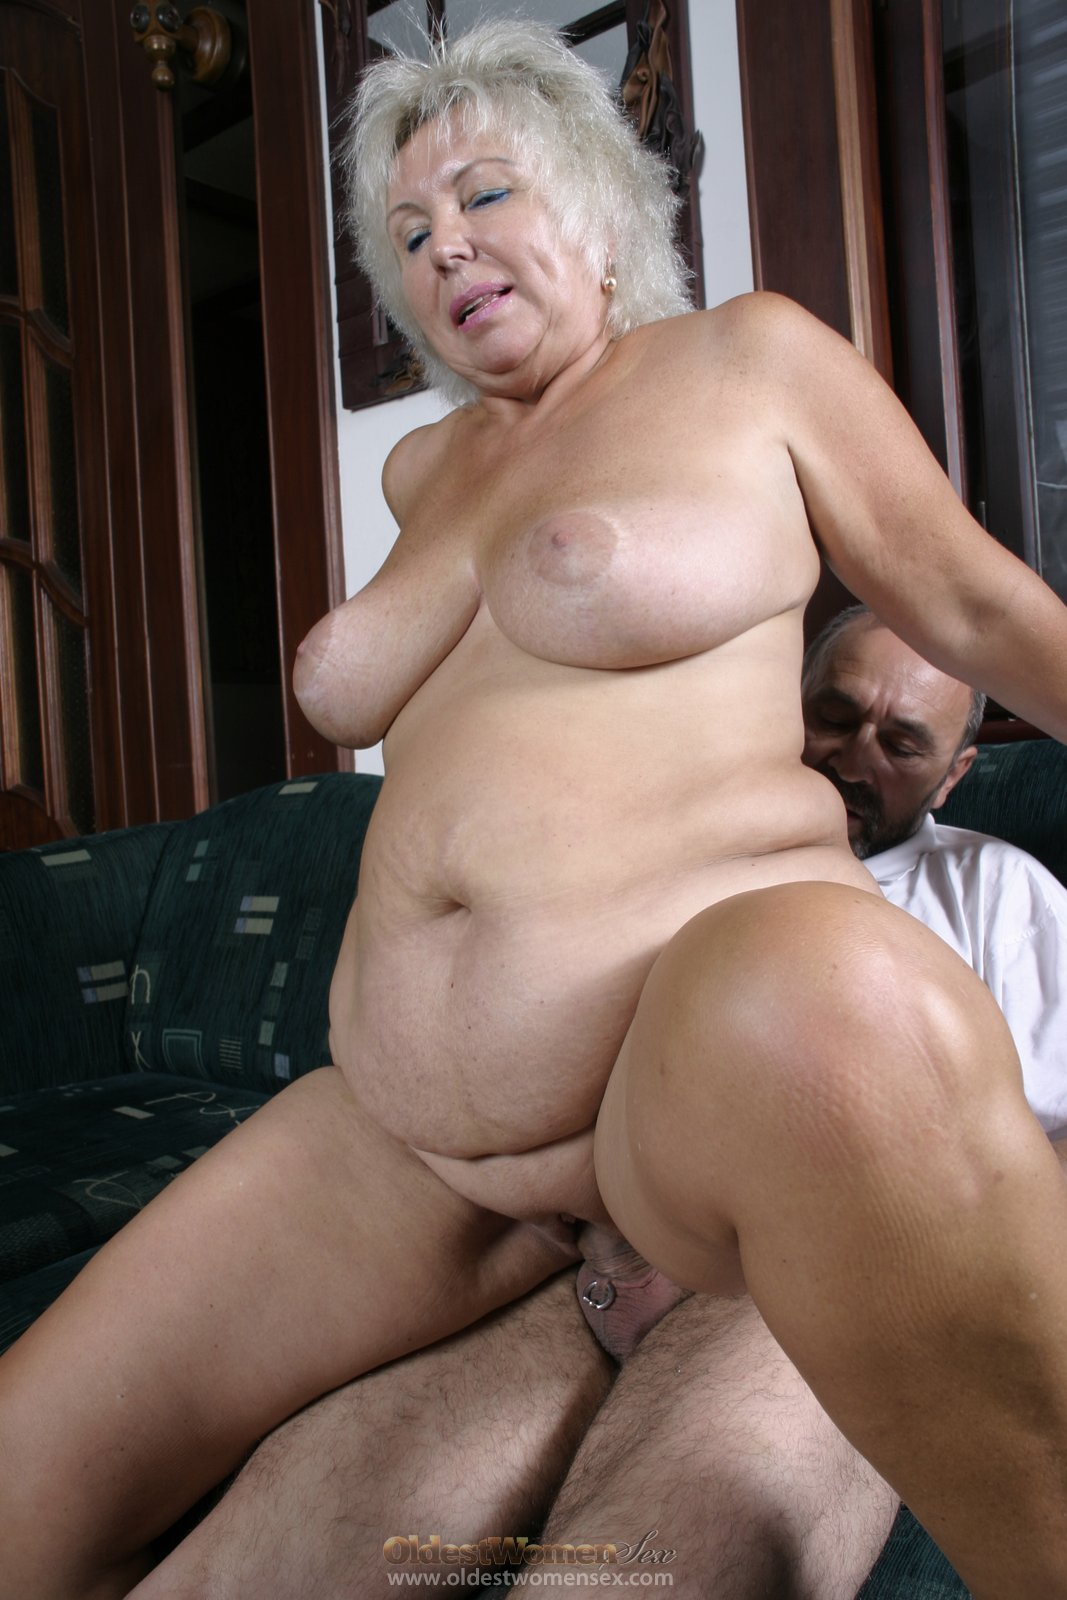 Sex With Older Women Porn - Woman porn old sex - galeries pornography